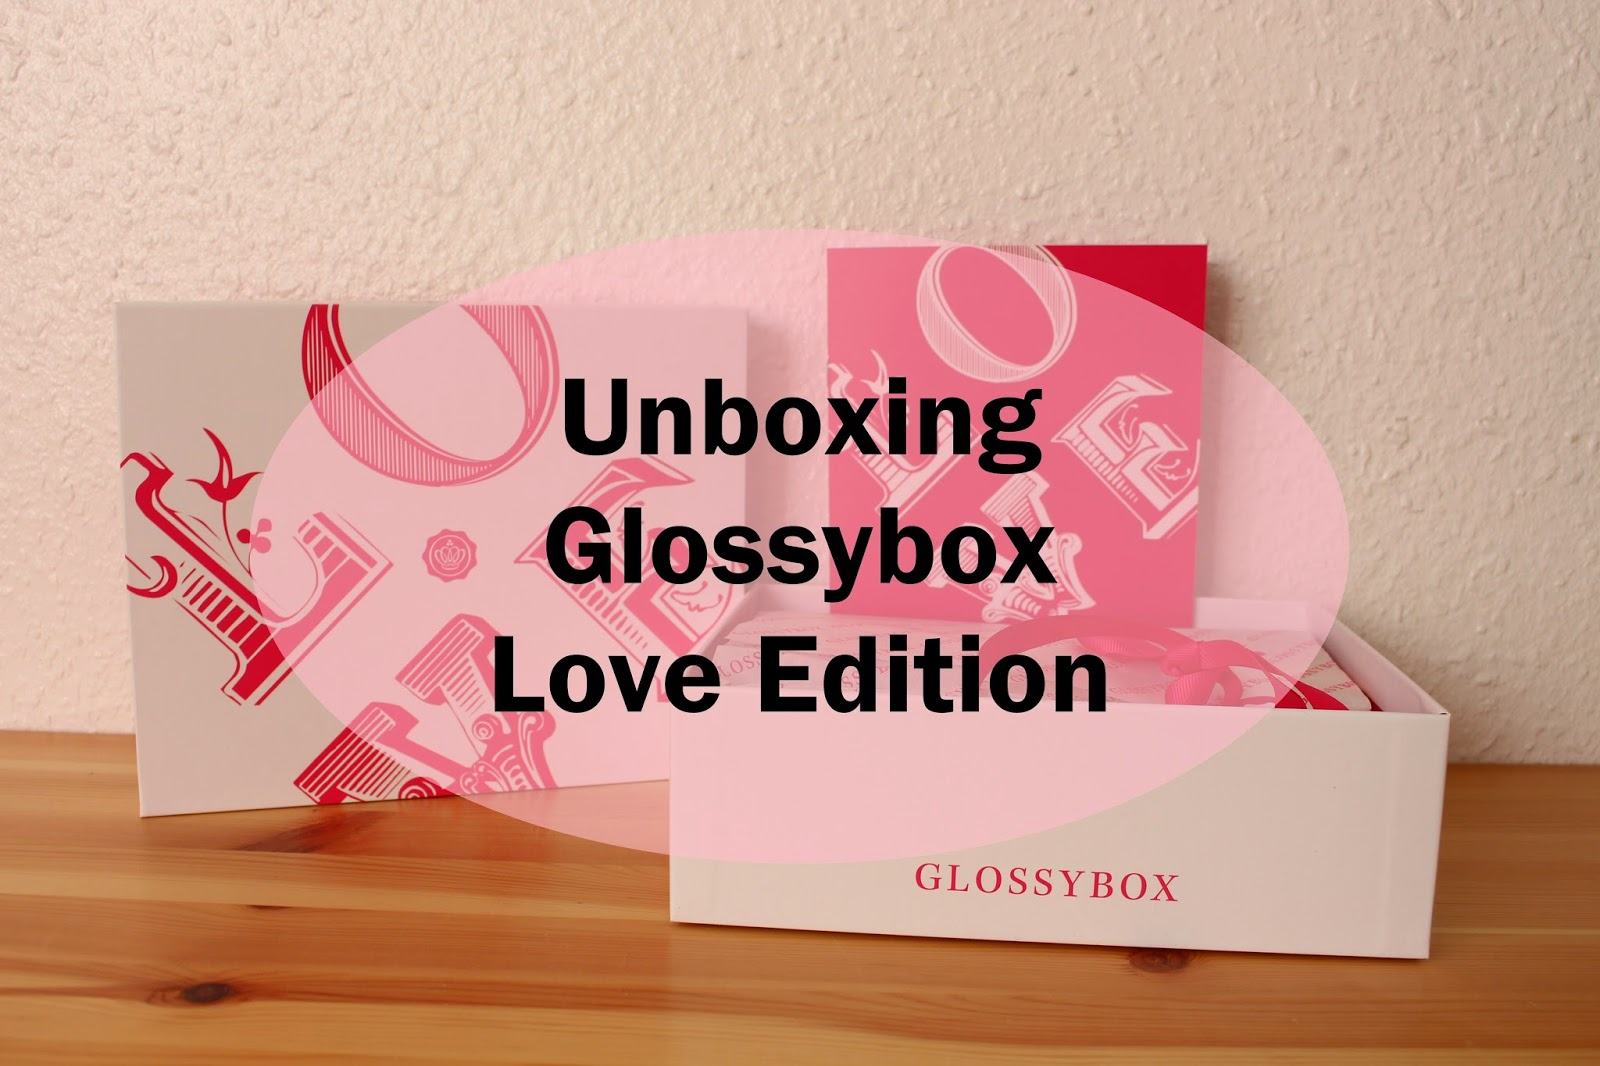 Glossybox Love Edition